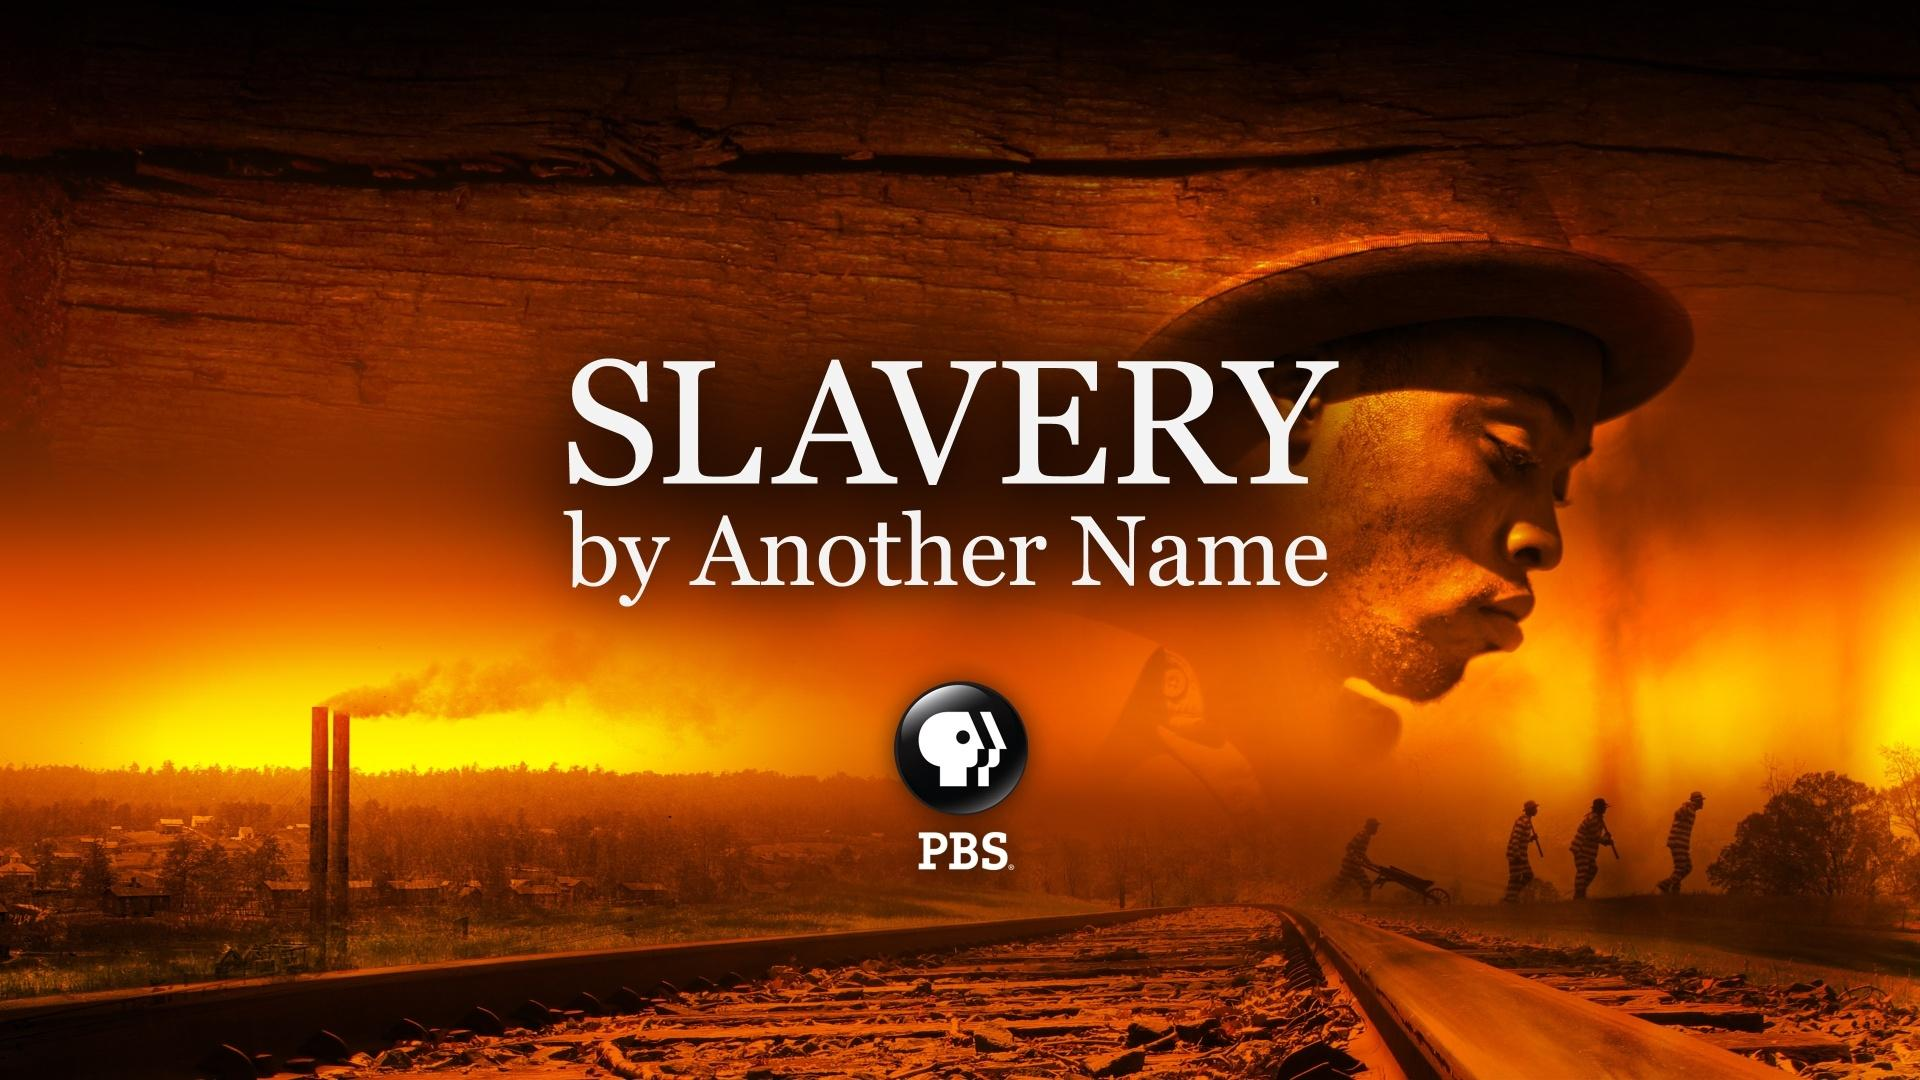 Watch now: Slavery by Another Name | Slavery Full Program | PBS Video